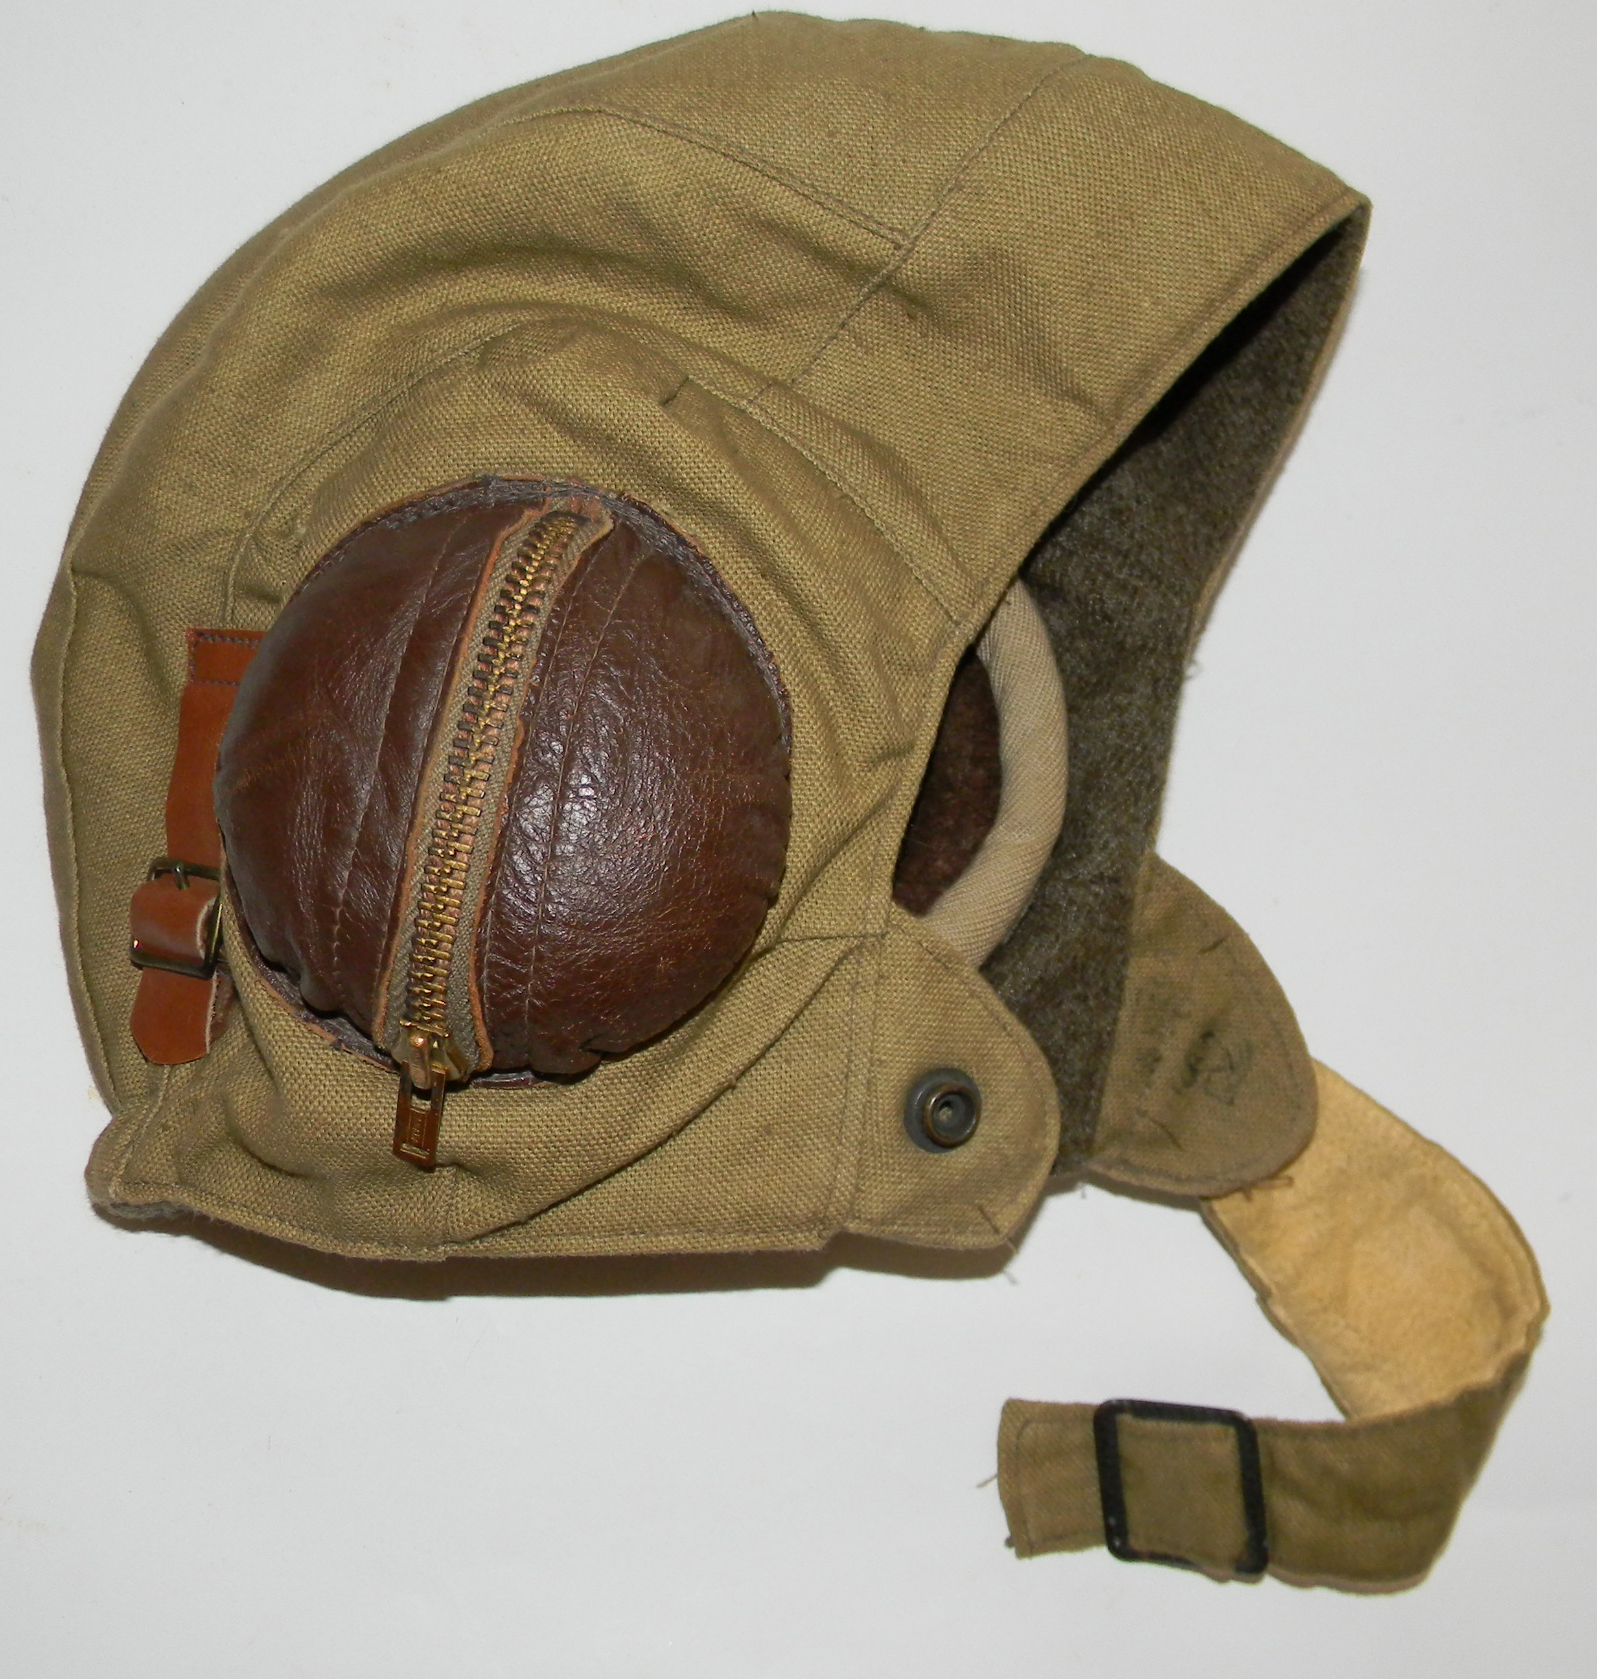 RCAF / RCN flying helmet late WWII